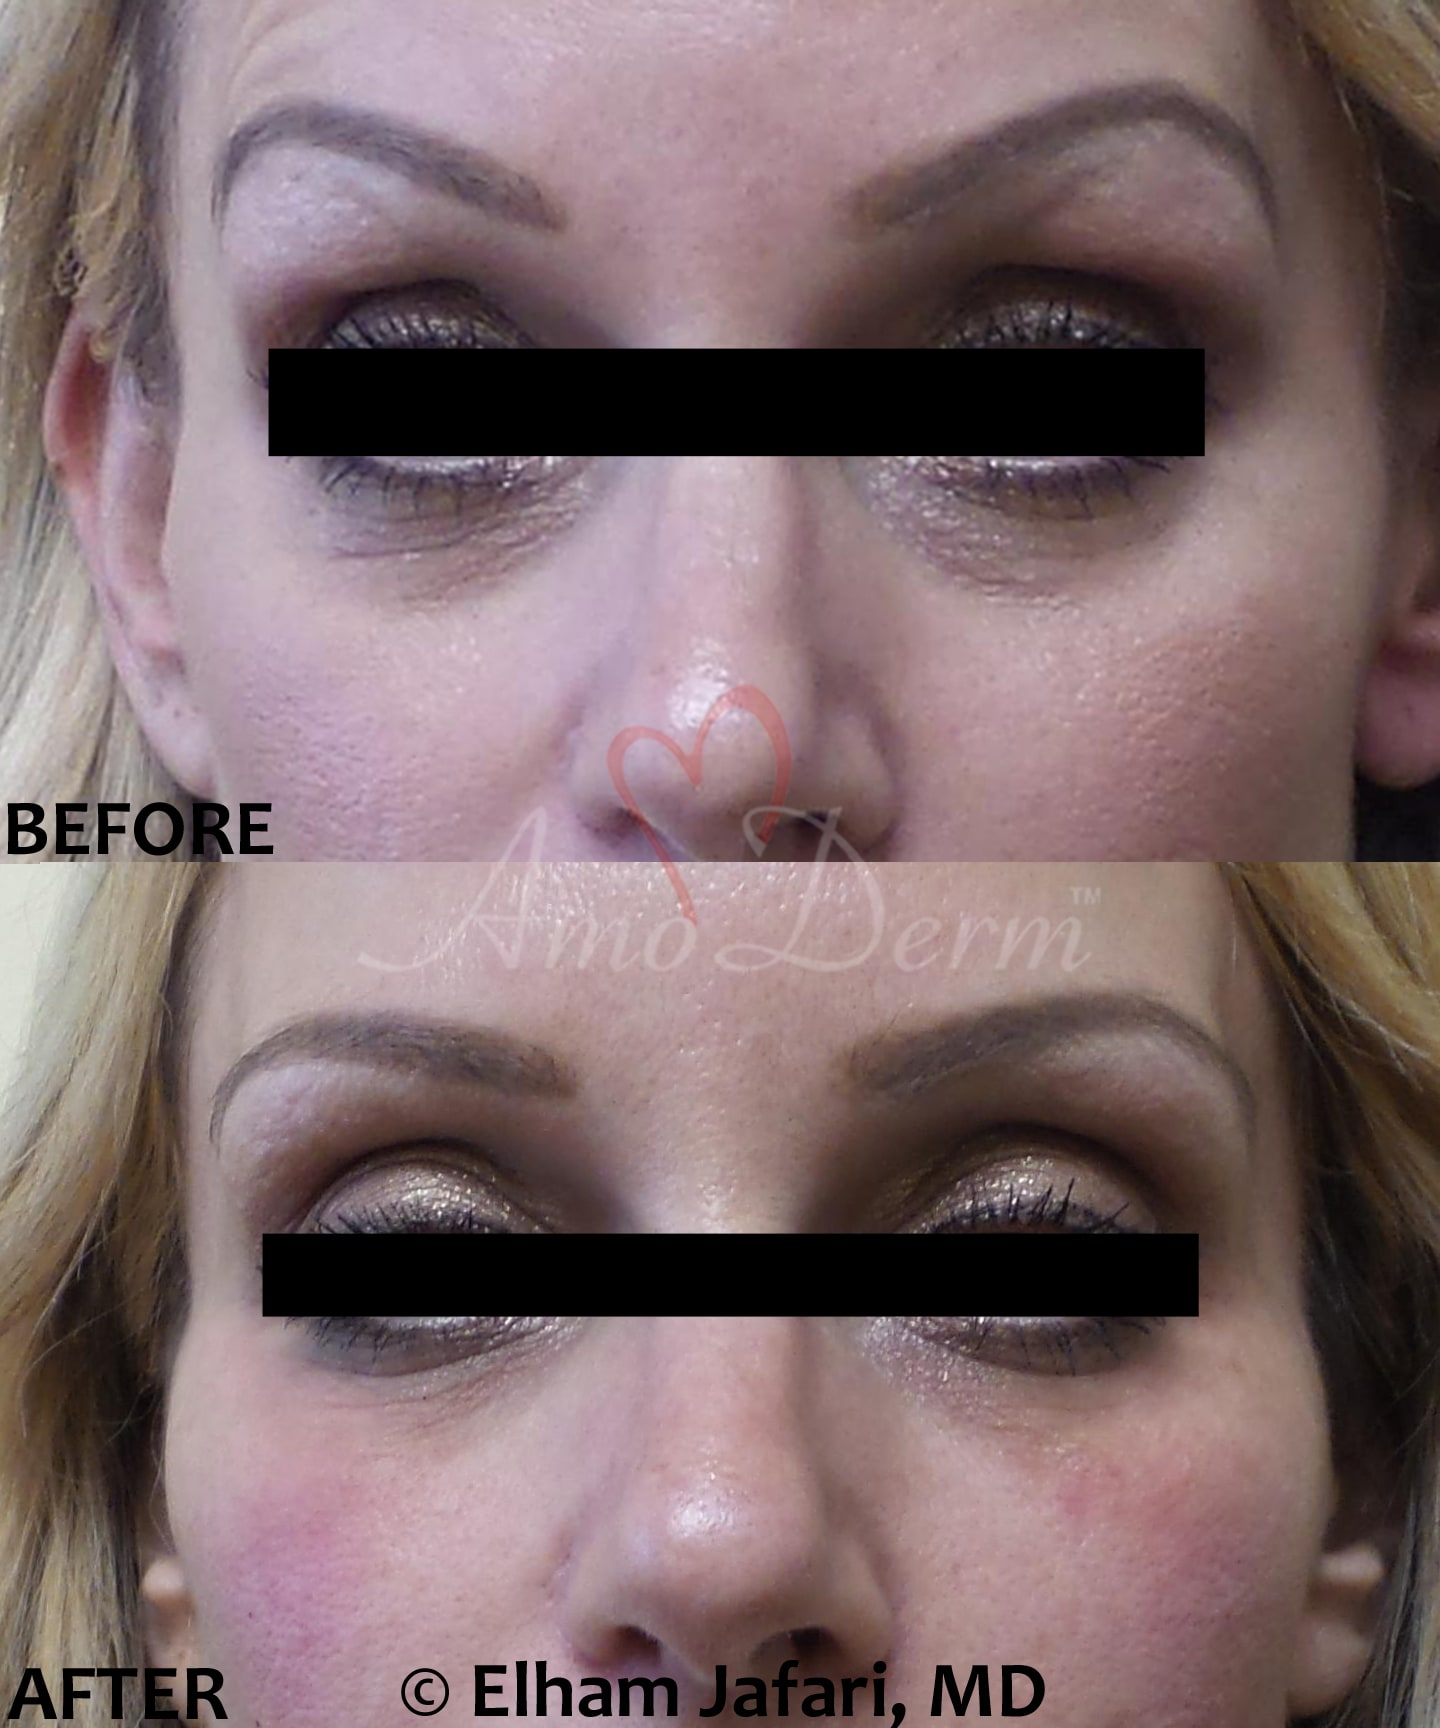 Treatment of dark circles, hollows or bags under eyes (puffy eyelids)